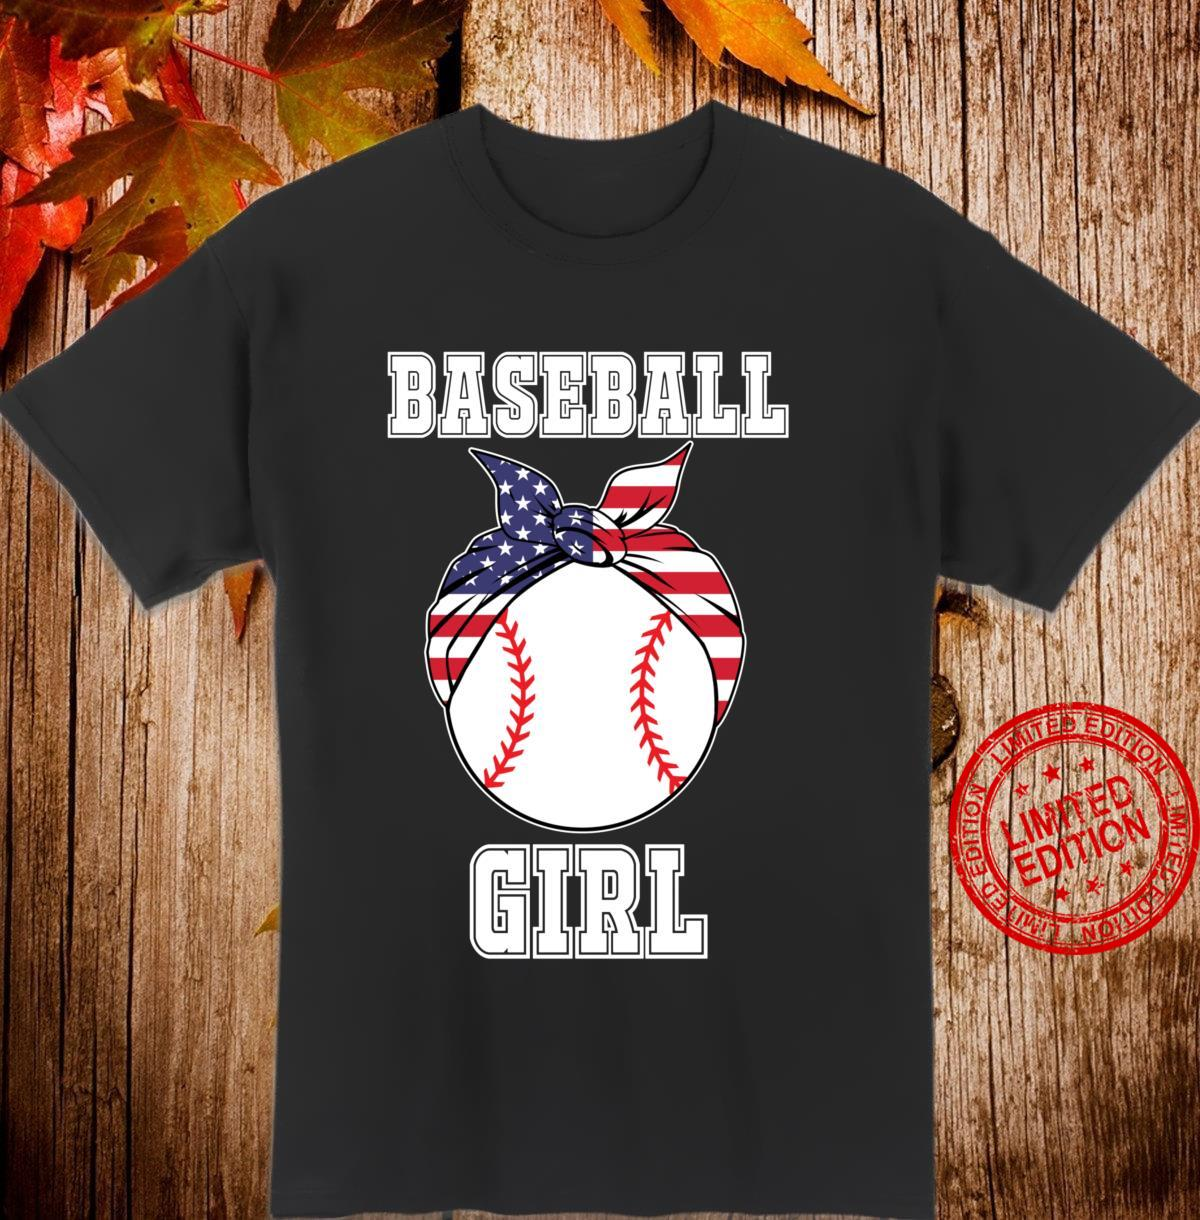 'Baseball Girl' College Girls Softball Player Shirt